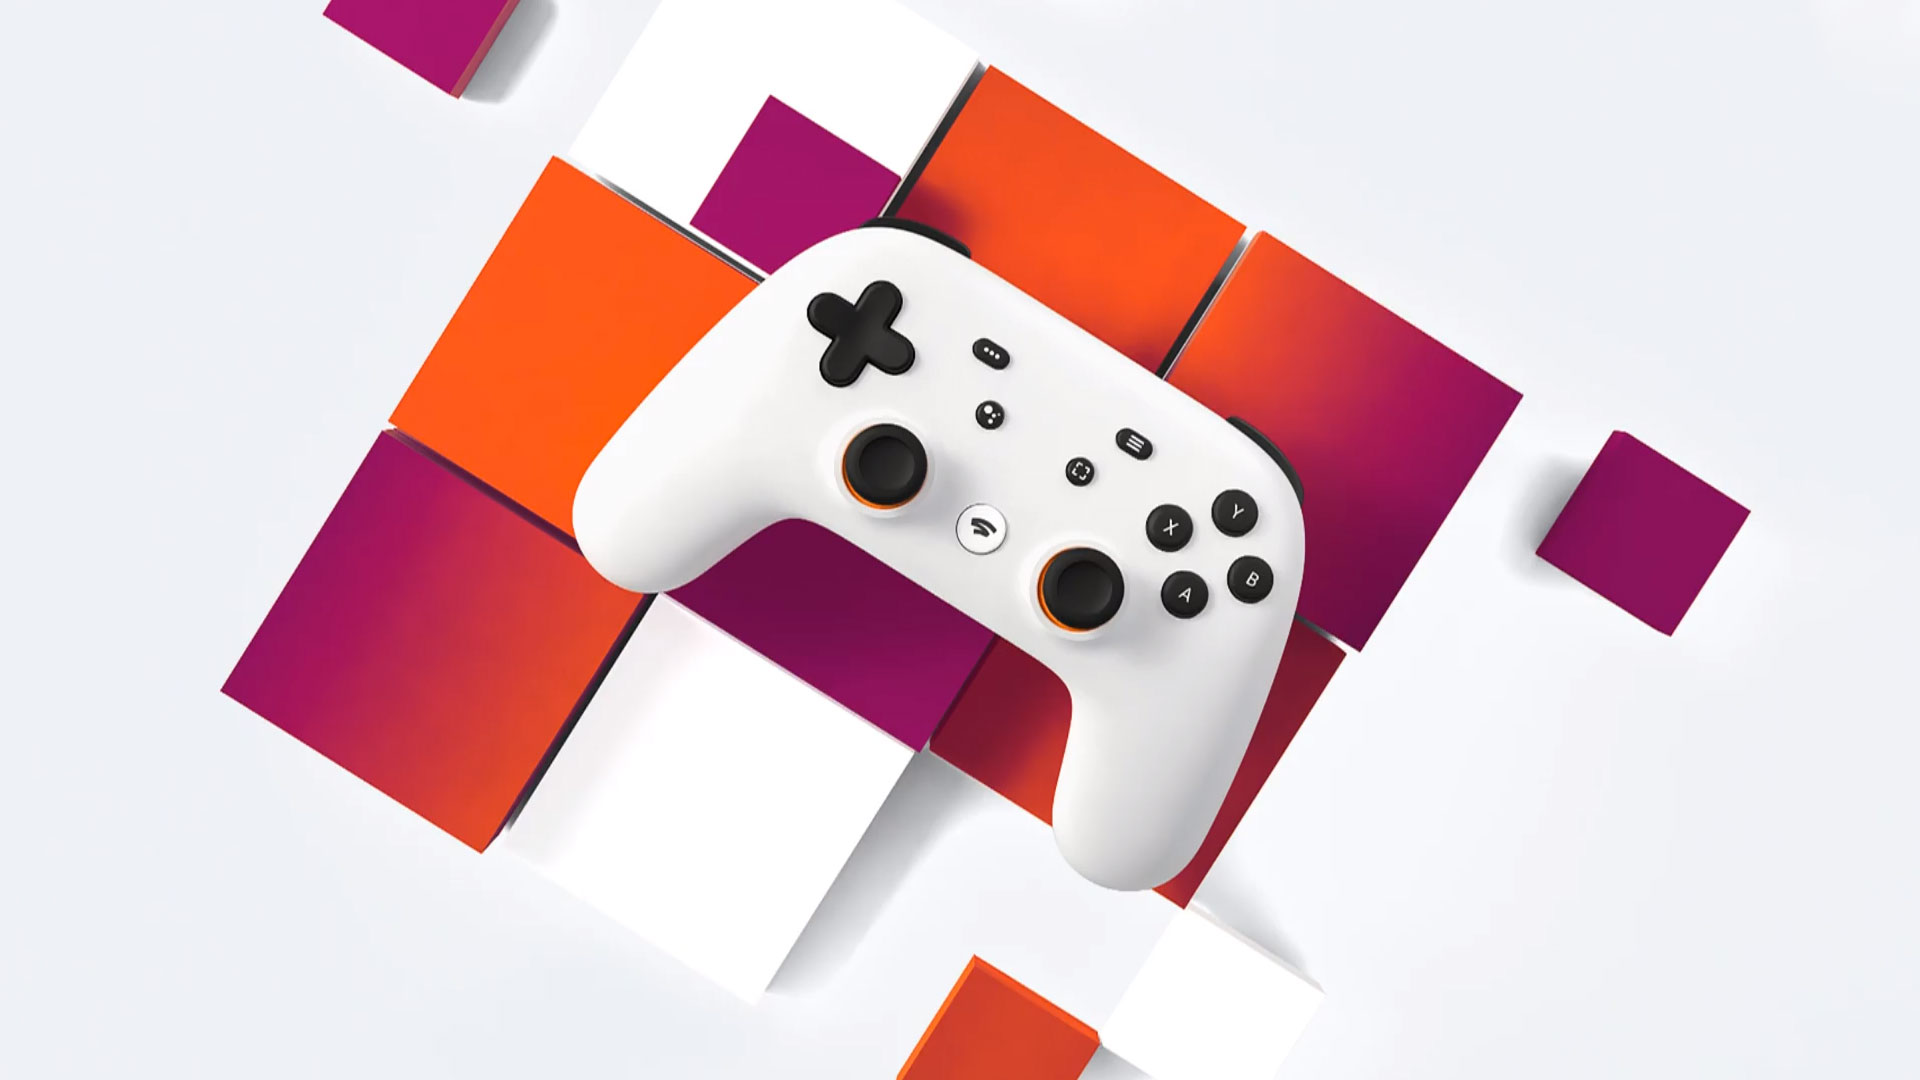 Gamers Disappointed By 5 New Stadia Games